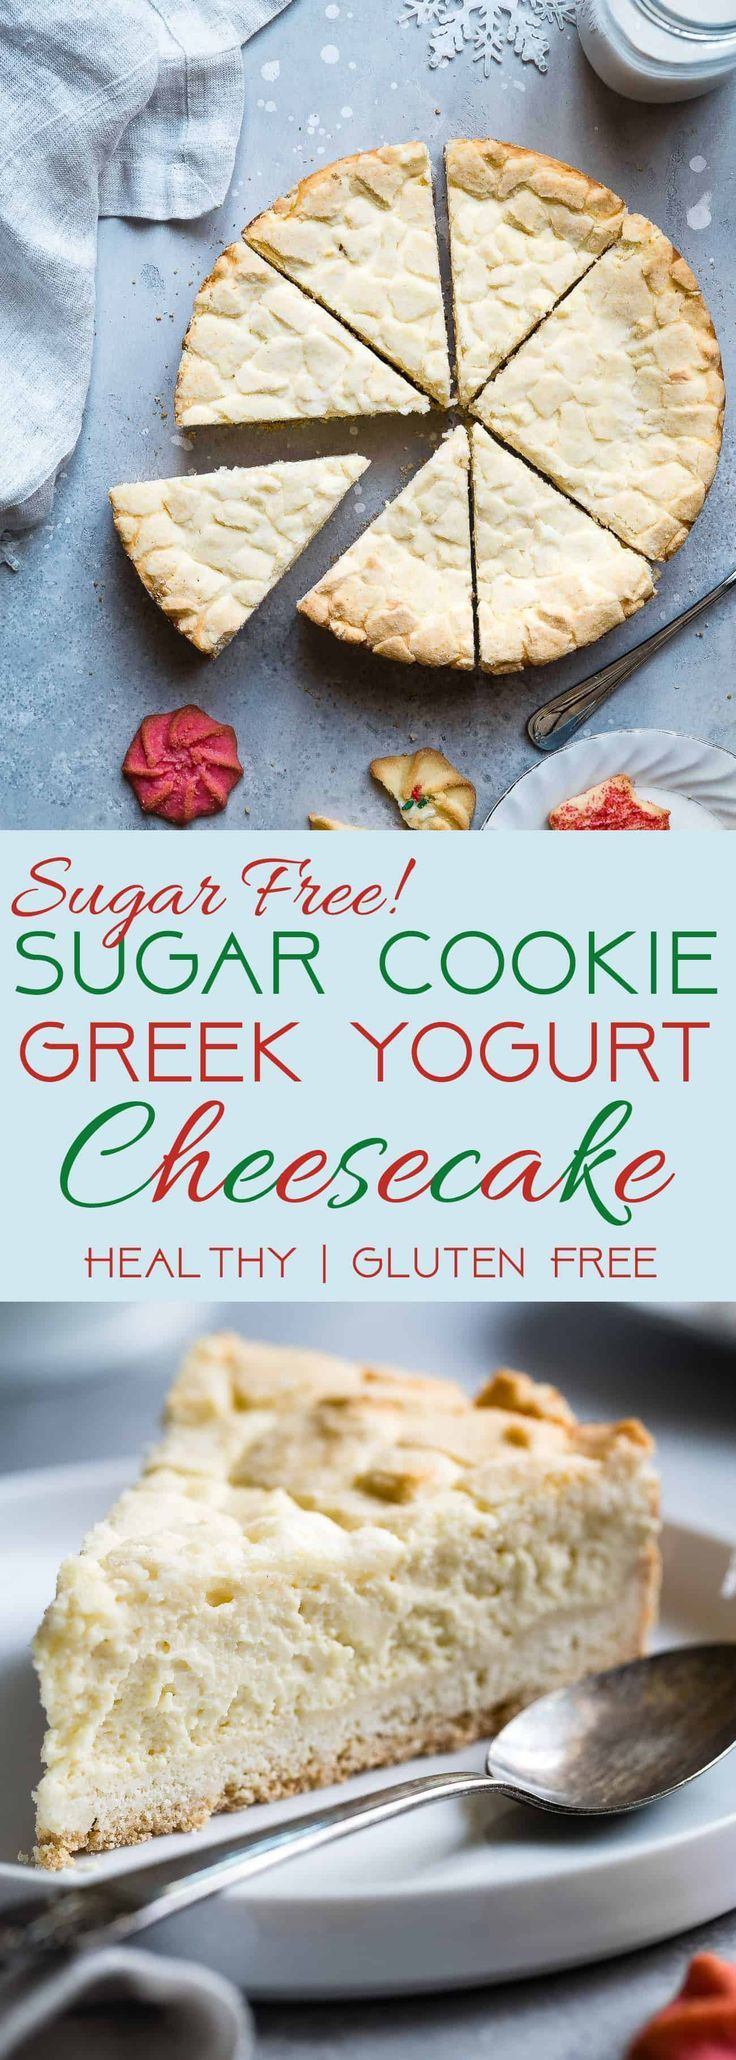 Sugar Free Greek Yogurt Cheesecake -This gluten free cheesecake is an easy dessert that combines 2 Holiday treats ! It's so creamy you won't believe it's healthy, sugar free and only 235 calories!   Foodfaithfitness.com   @FoodFaithFit